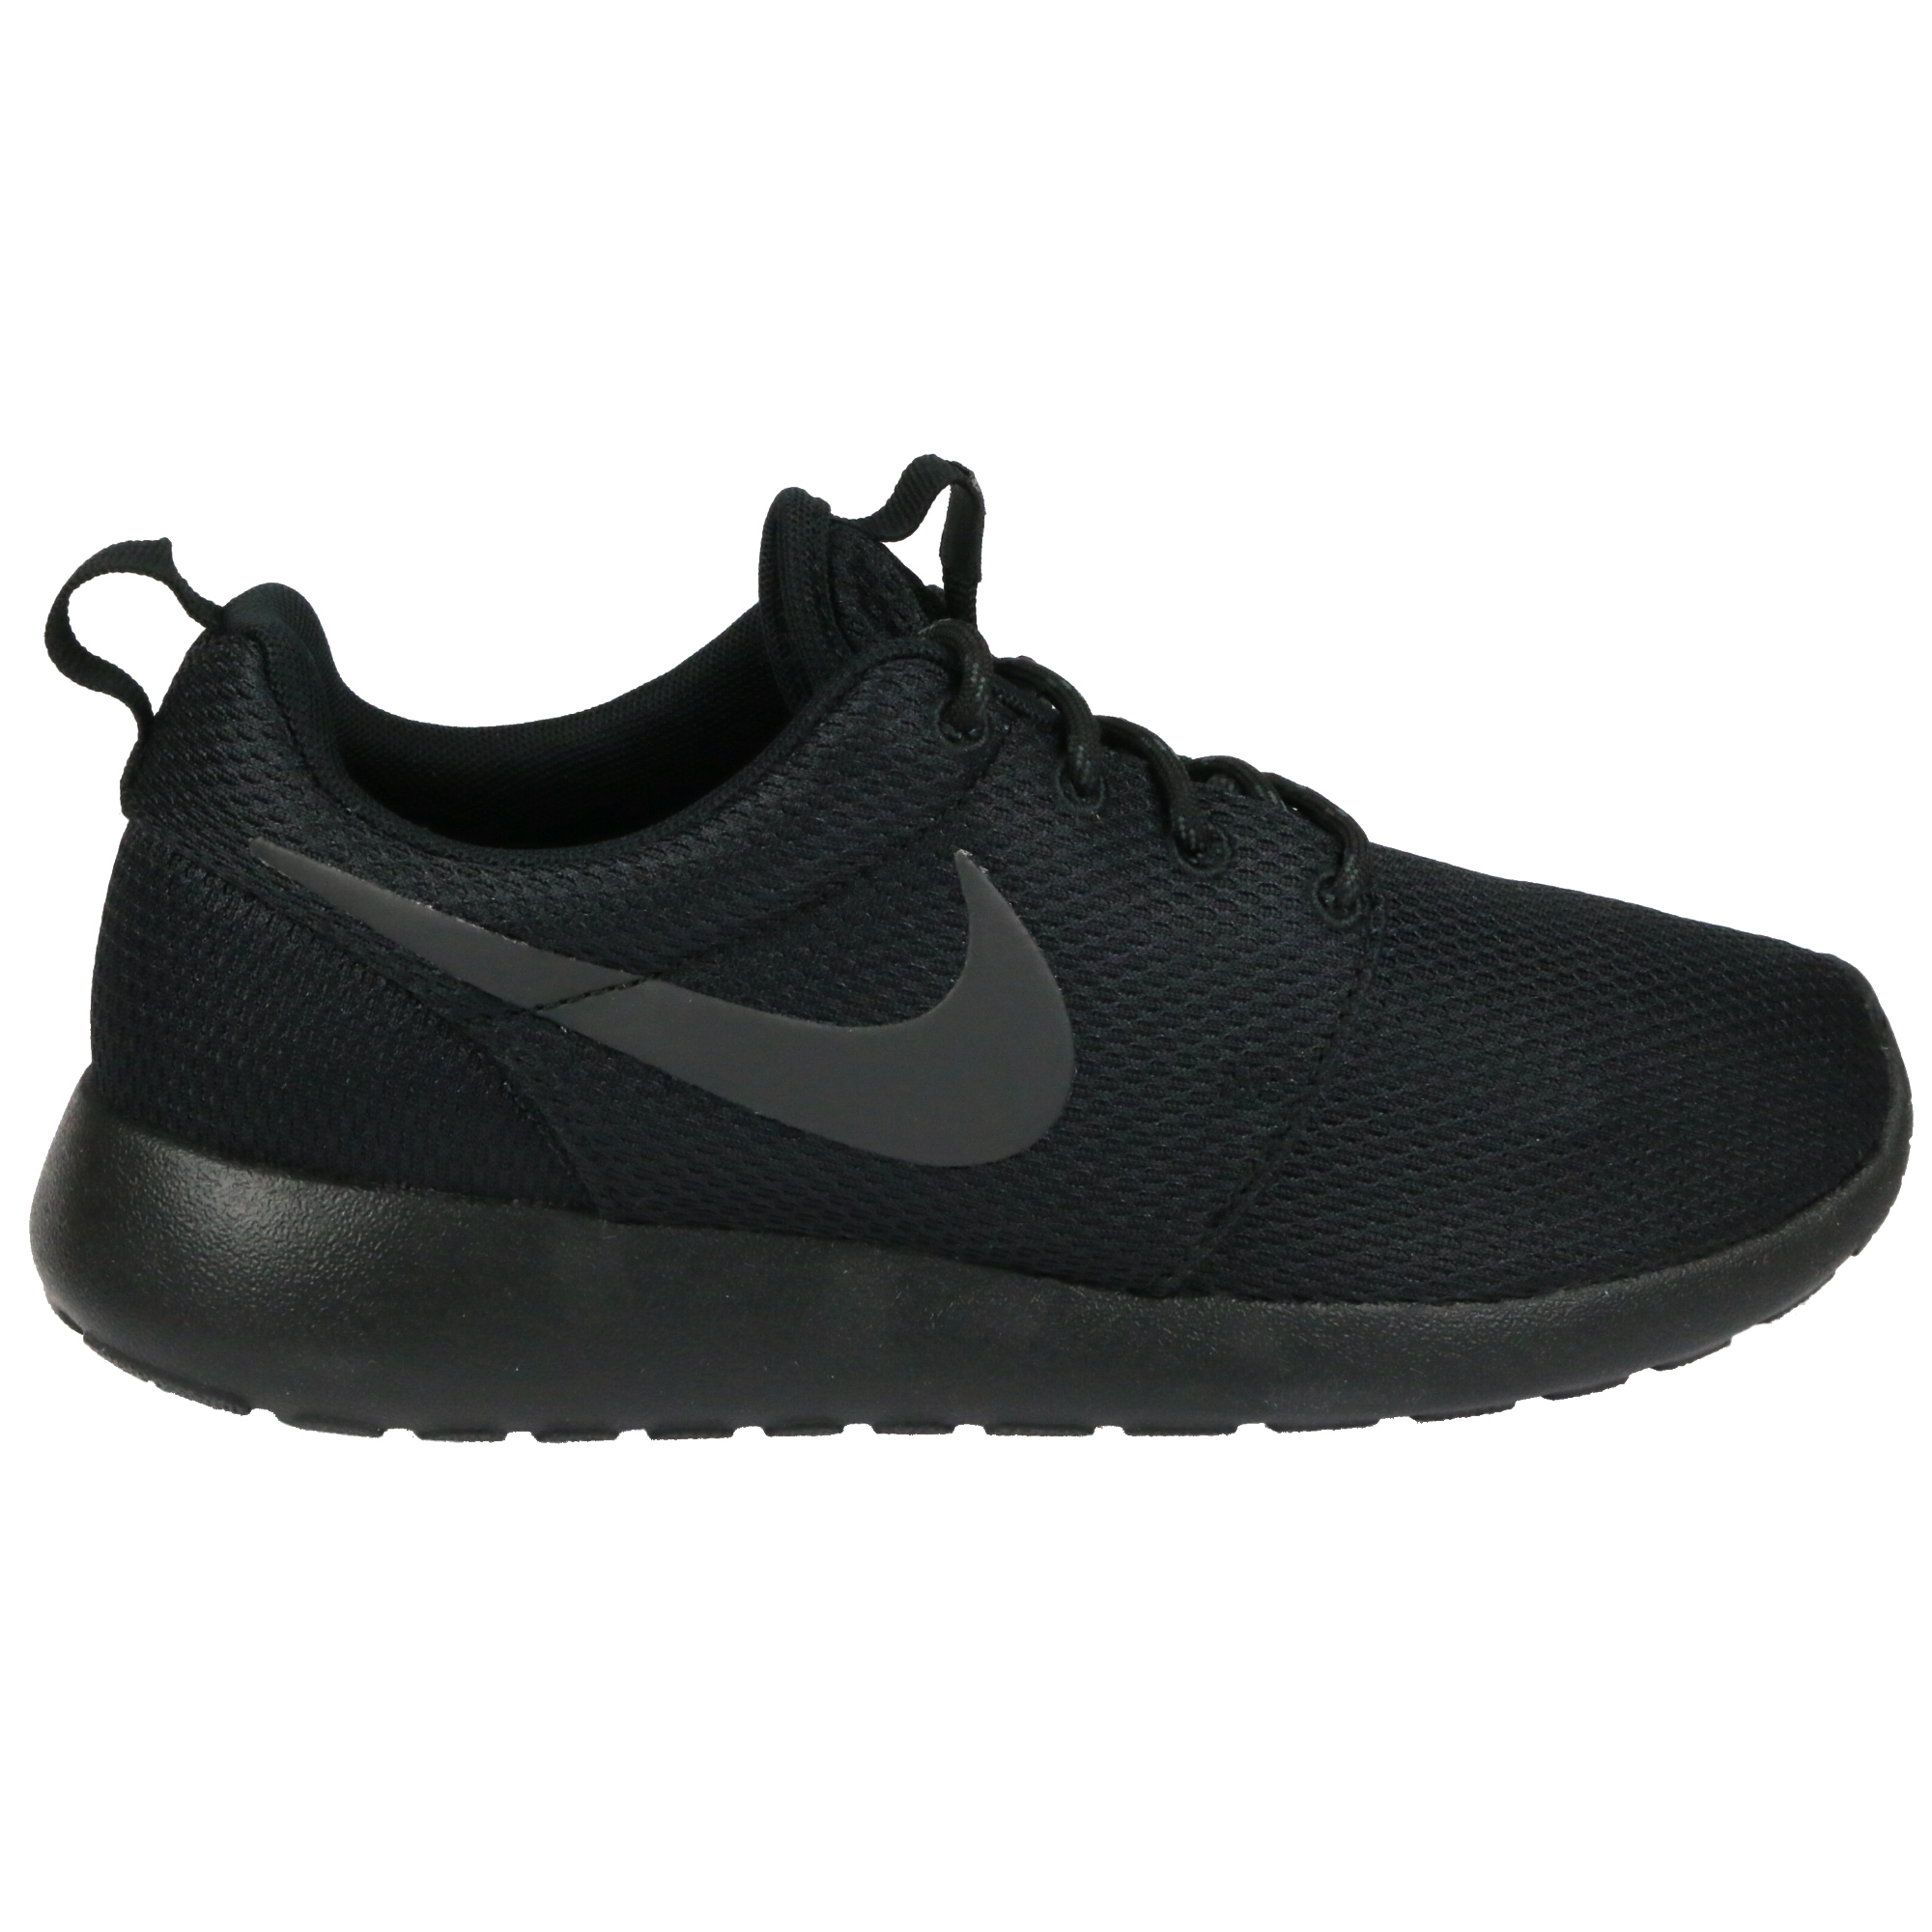 inexpensive billig nike roshe run speckle damänner grün